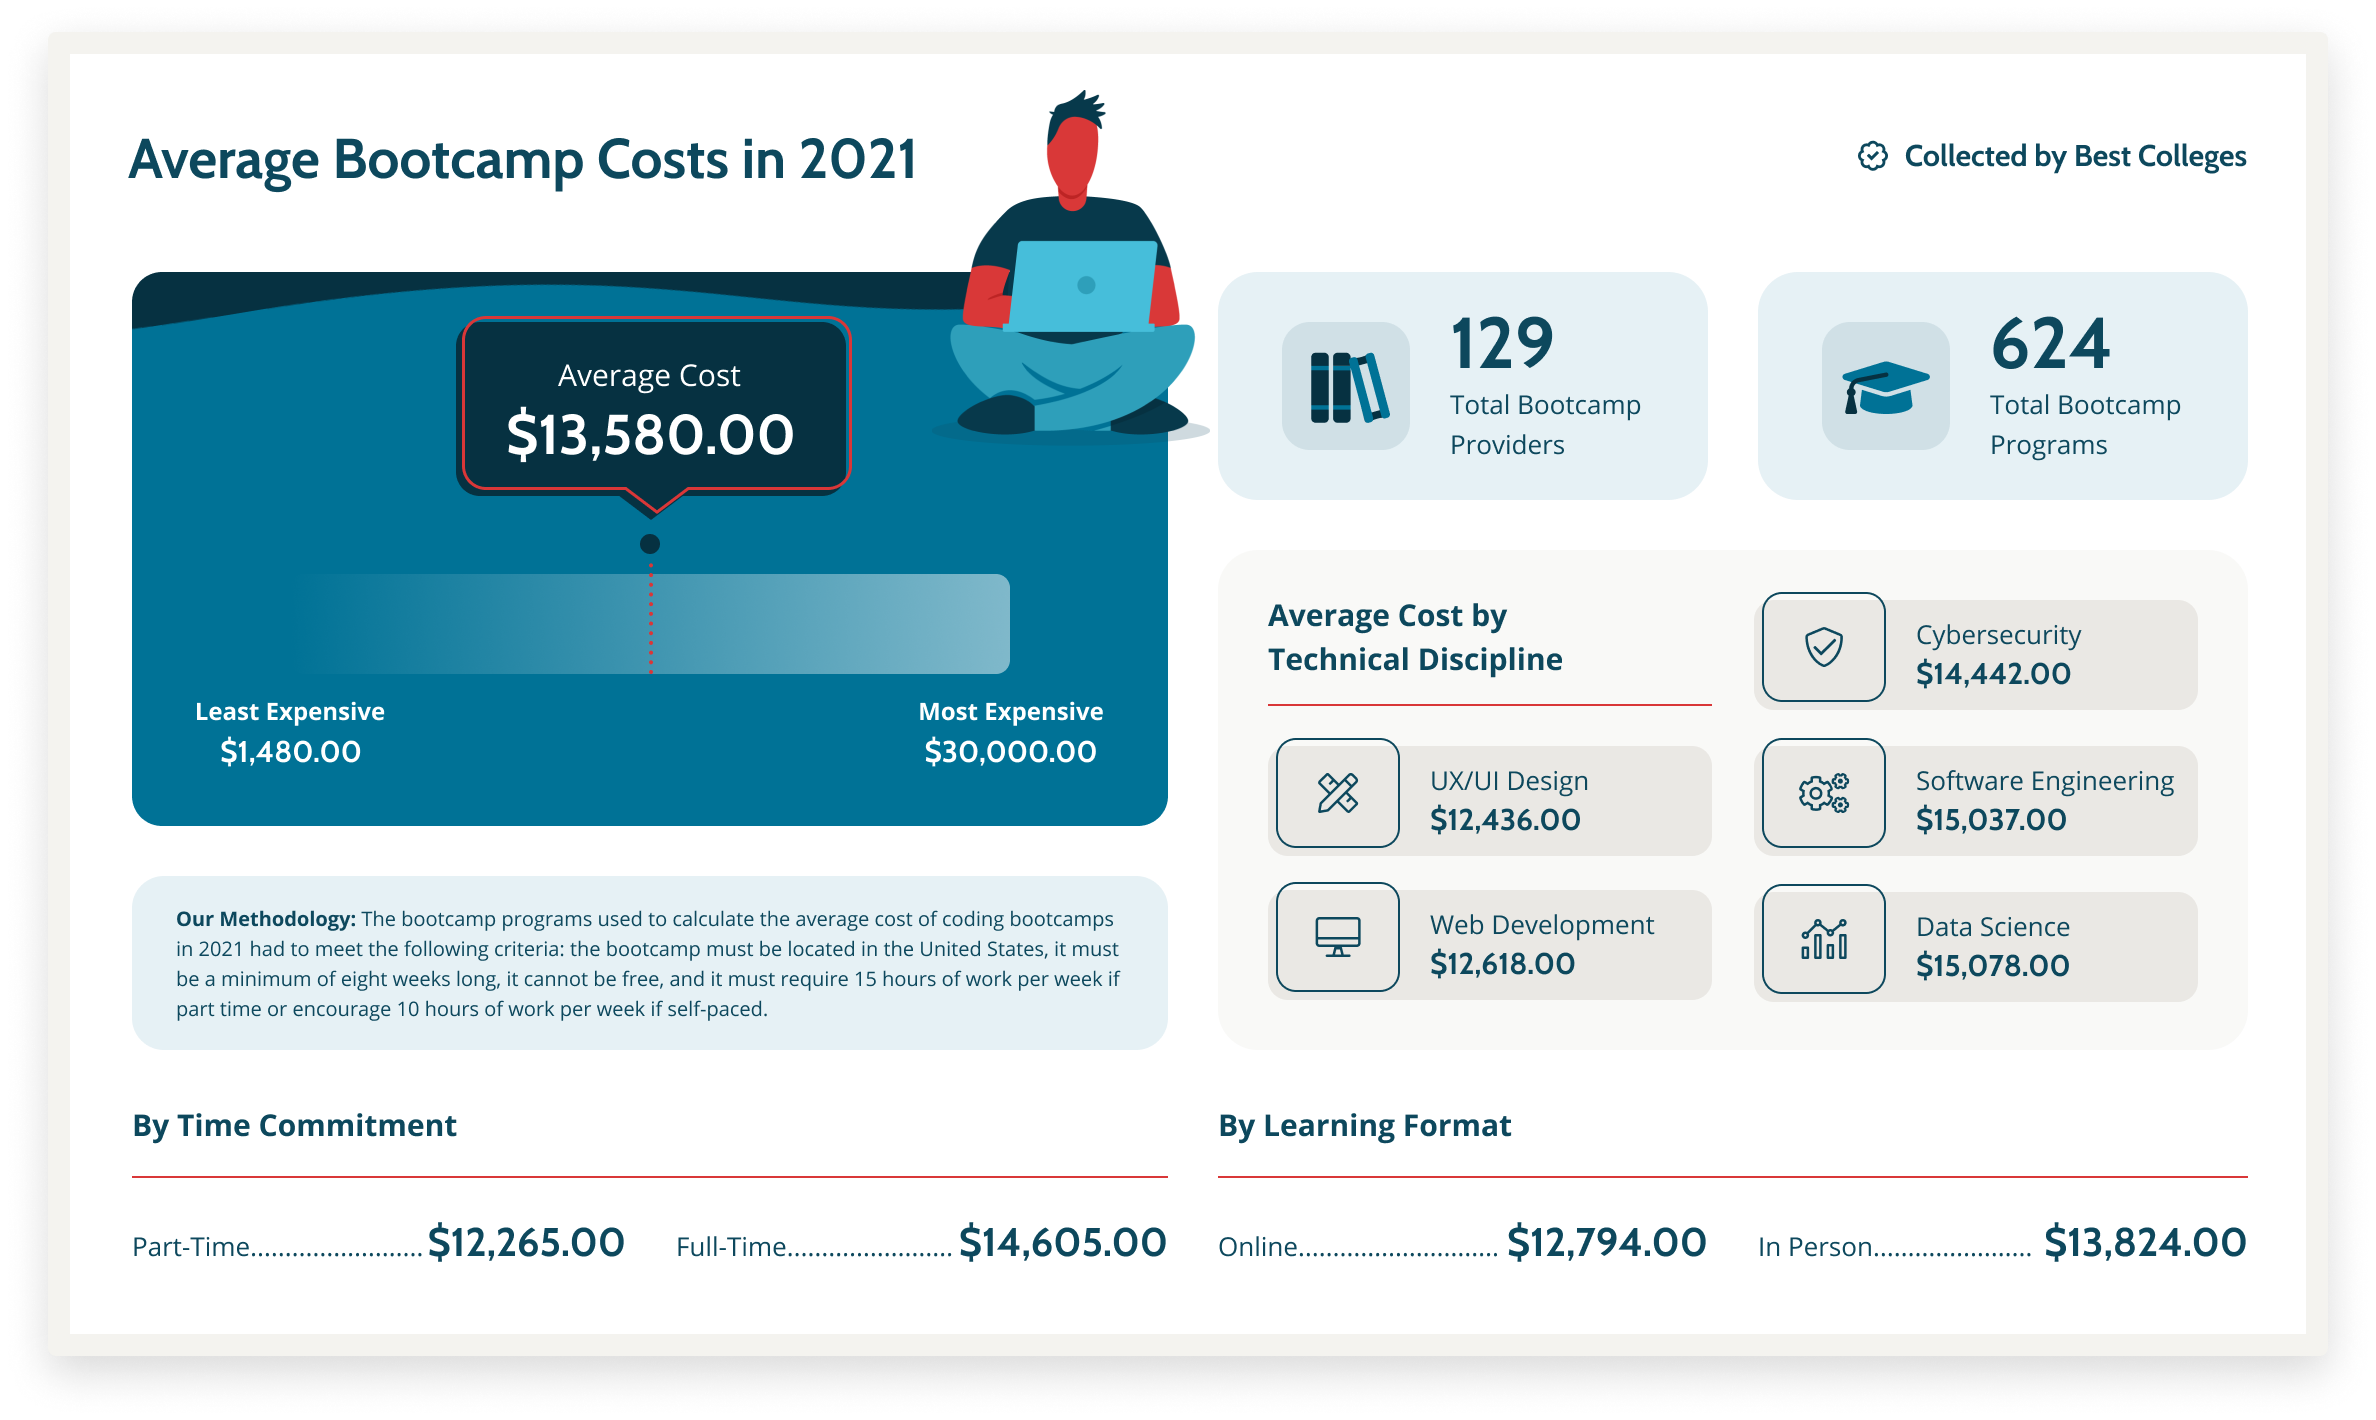 BestColleges.Com Average Bootcamp Cost Infographic